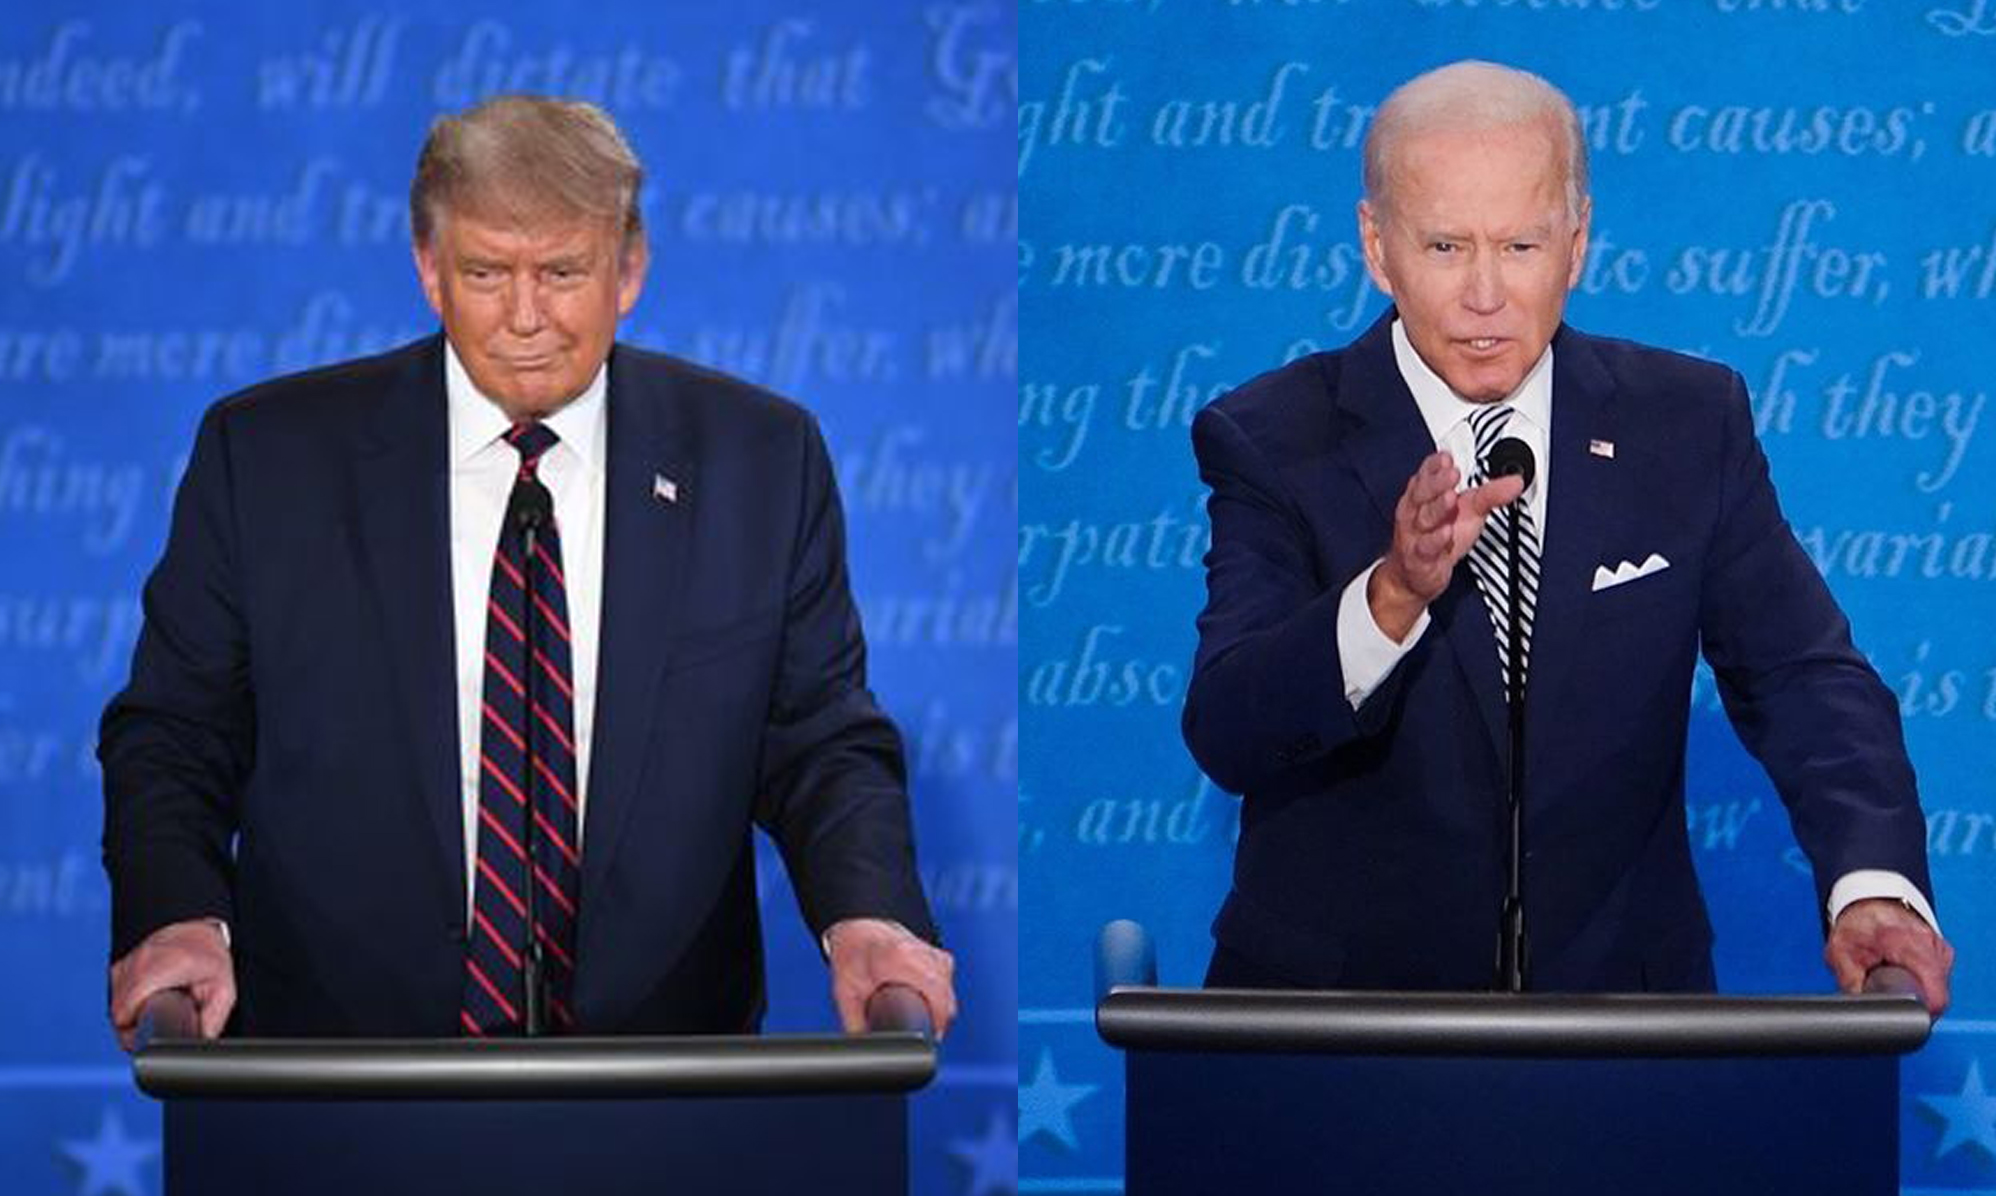 The First Presidential Debate And Its Aftermath